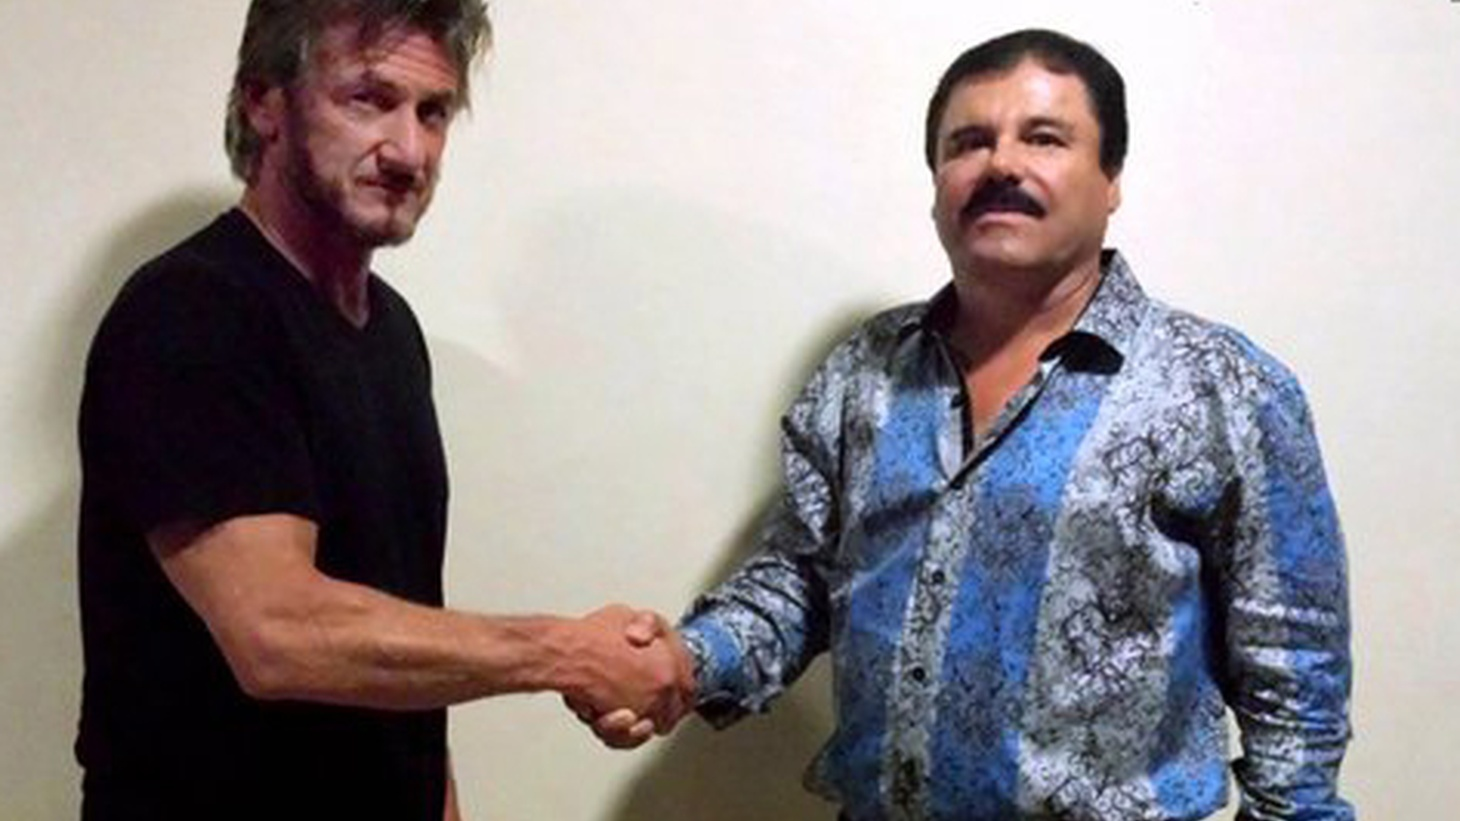 On Saturday, Rolling Stone magazine published an interview with the Mexican drug lord known as El Chapo. The interviewer? Not a seasoned journalist, but Sean Penn, the actor. El Chapo was captured last week after breaking out of prison, but Penn conducted his interview back in October, when the kingpin was still on the run.